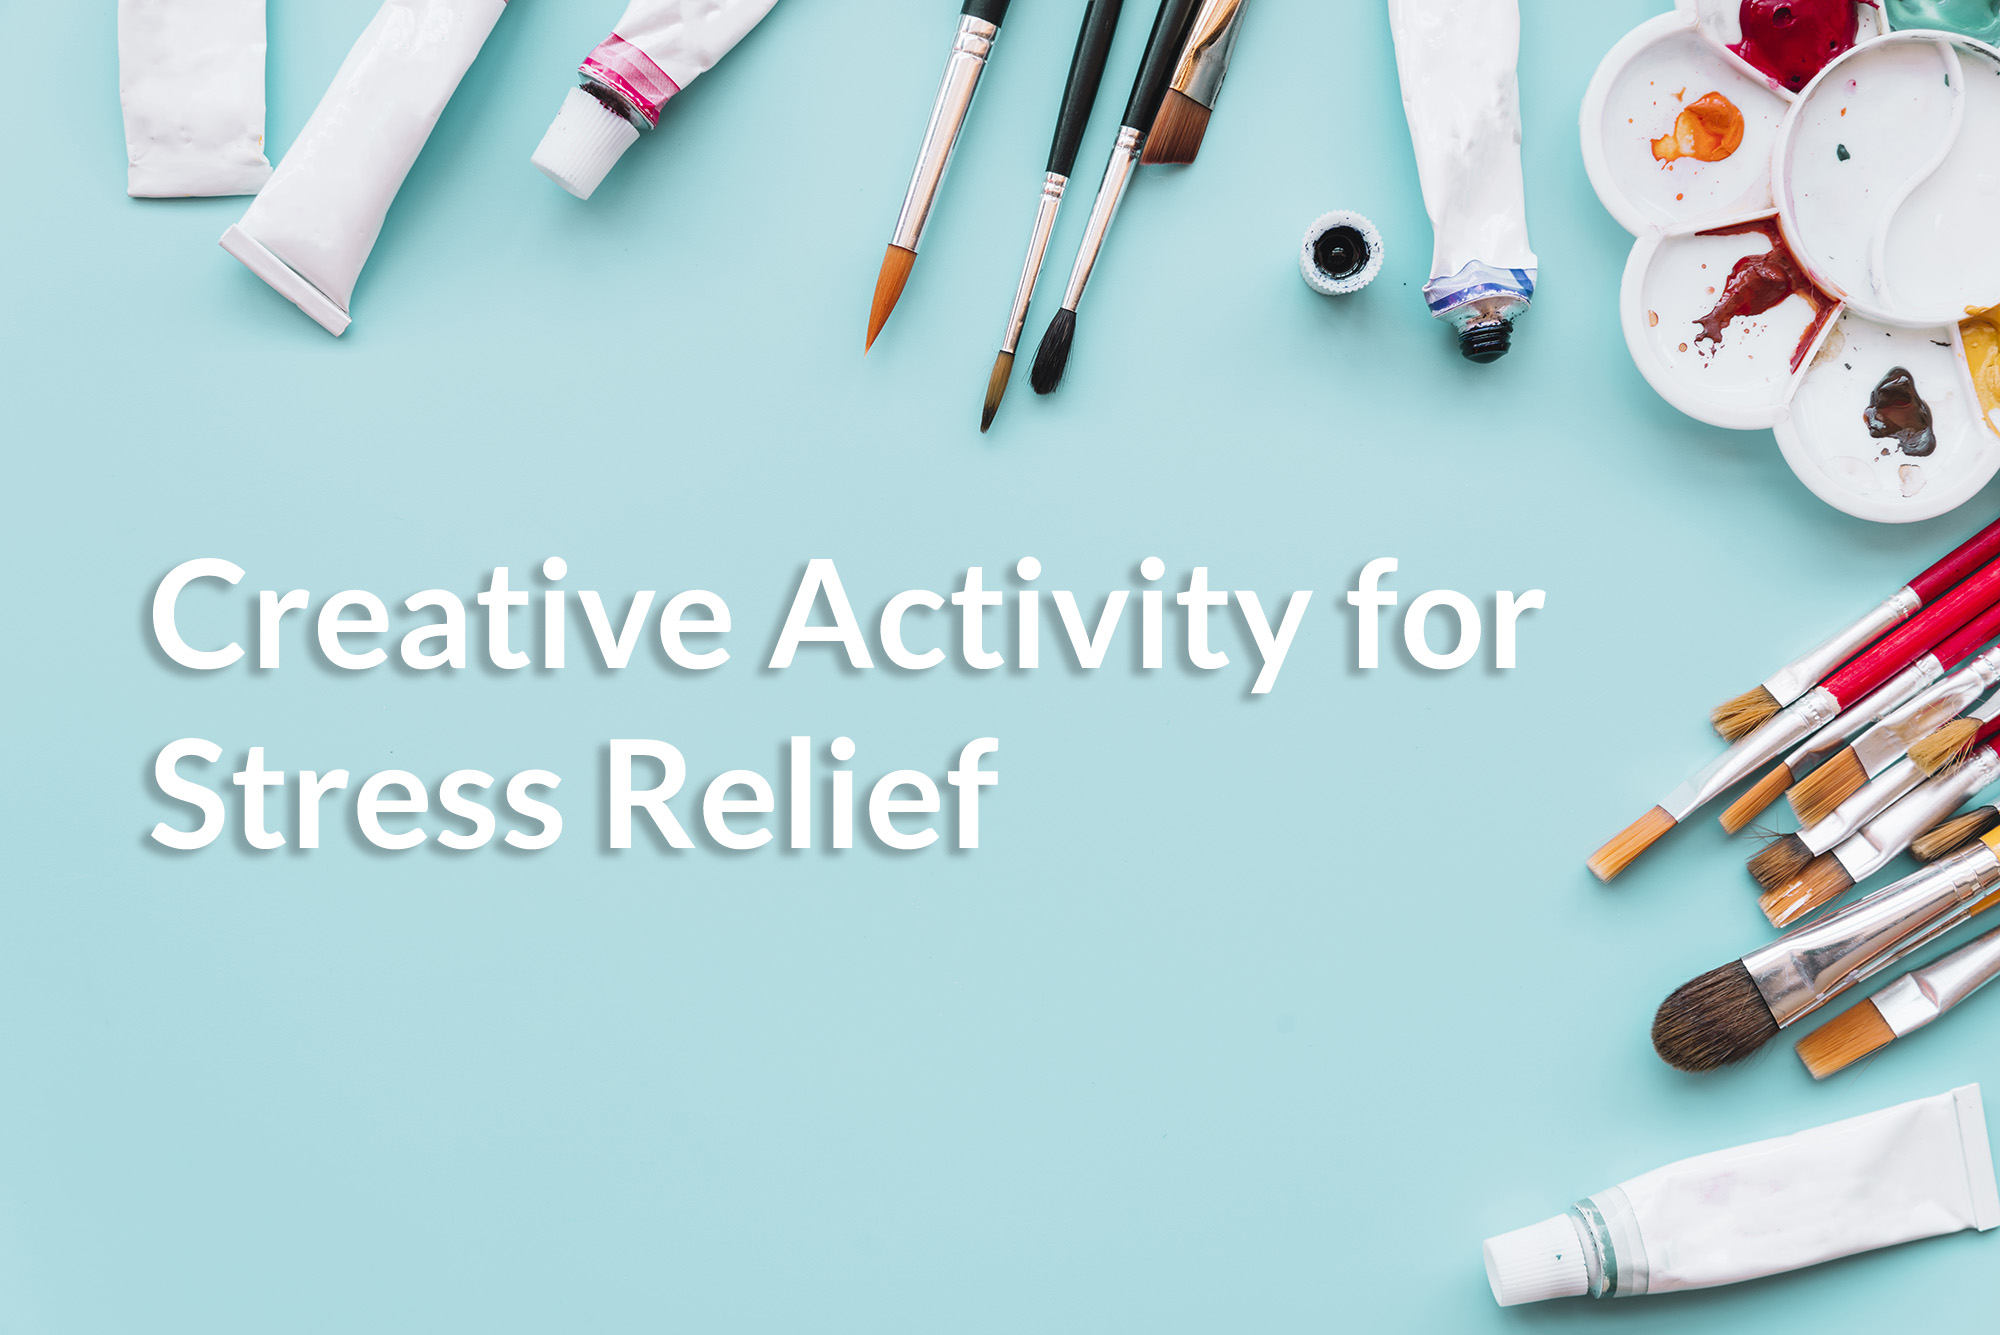 Stress Relief activity